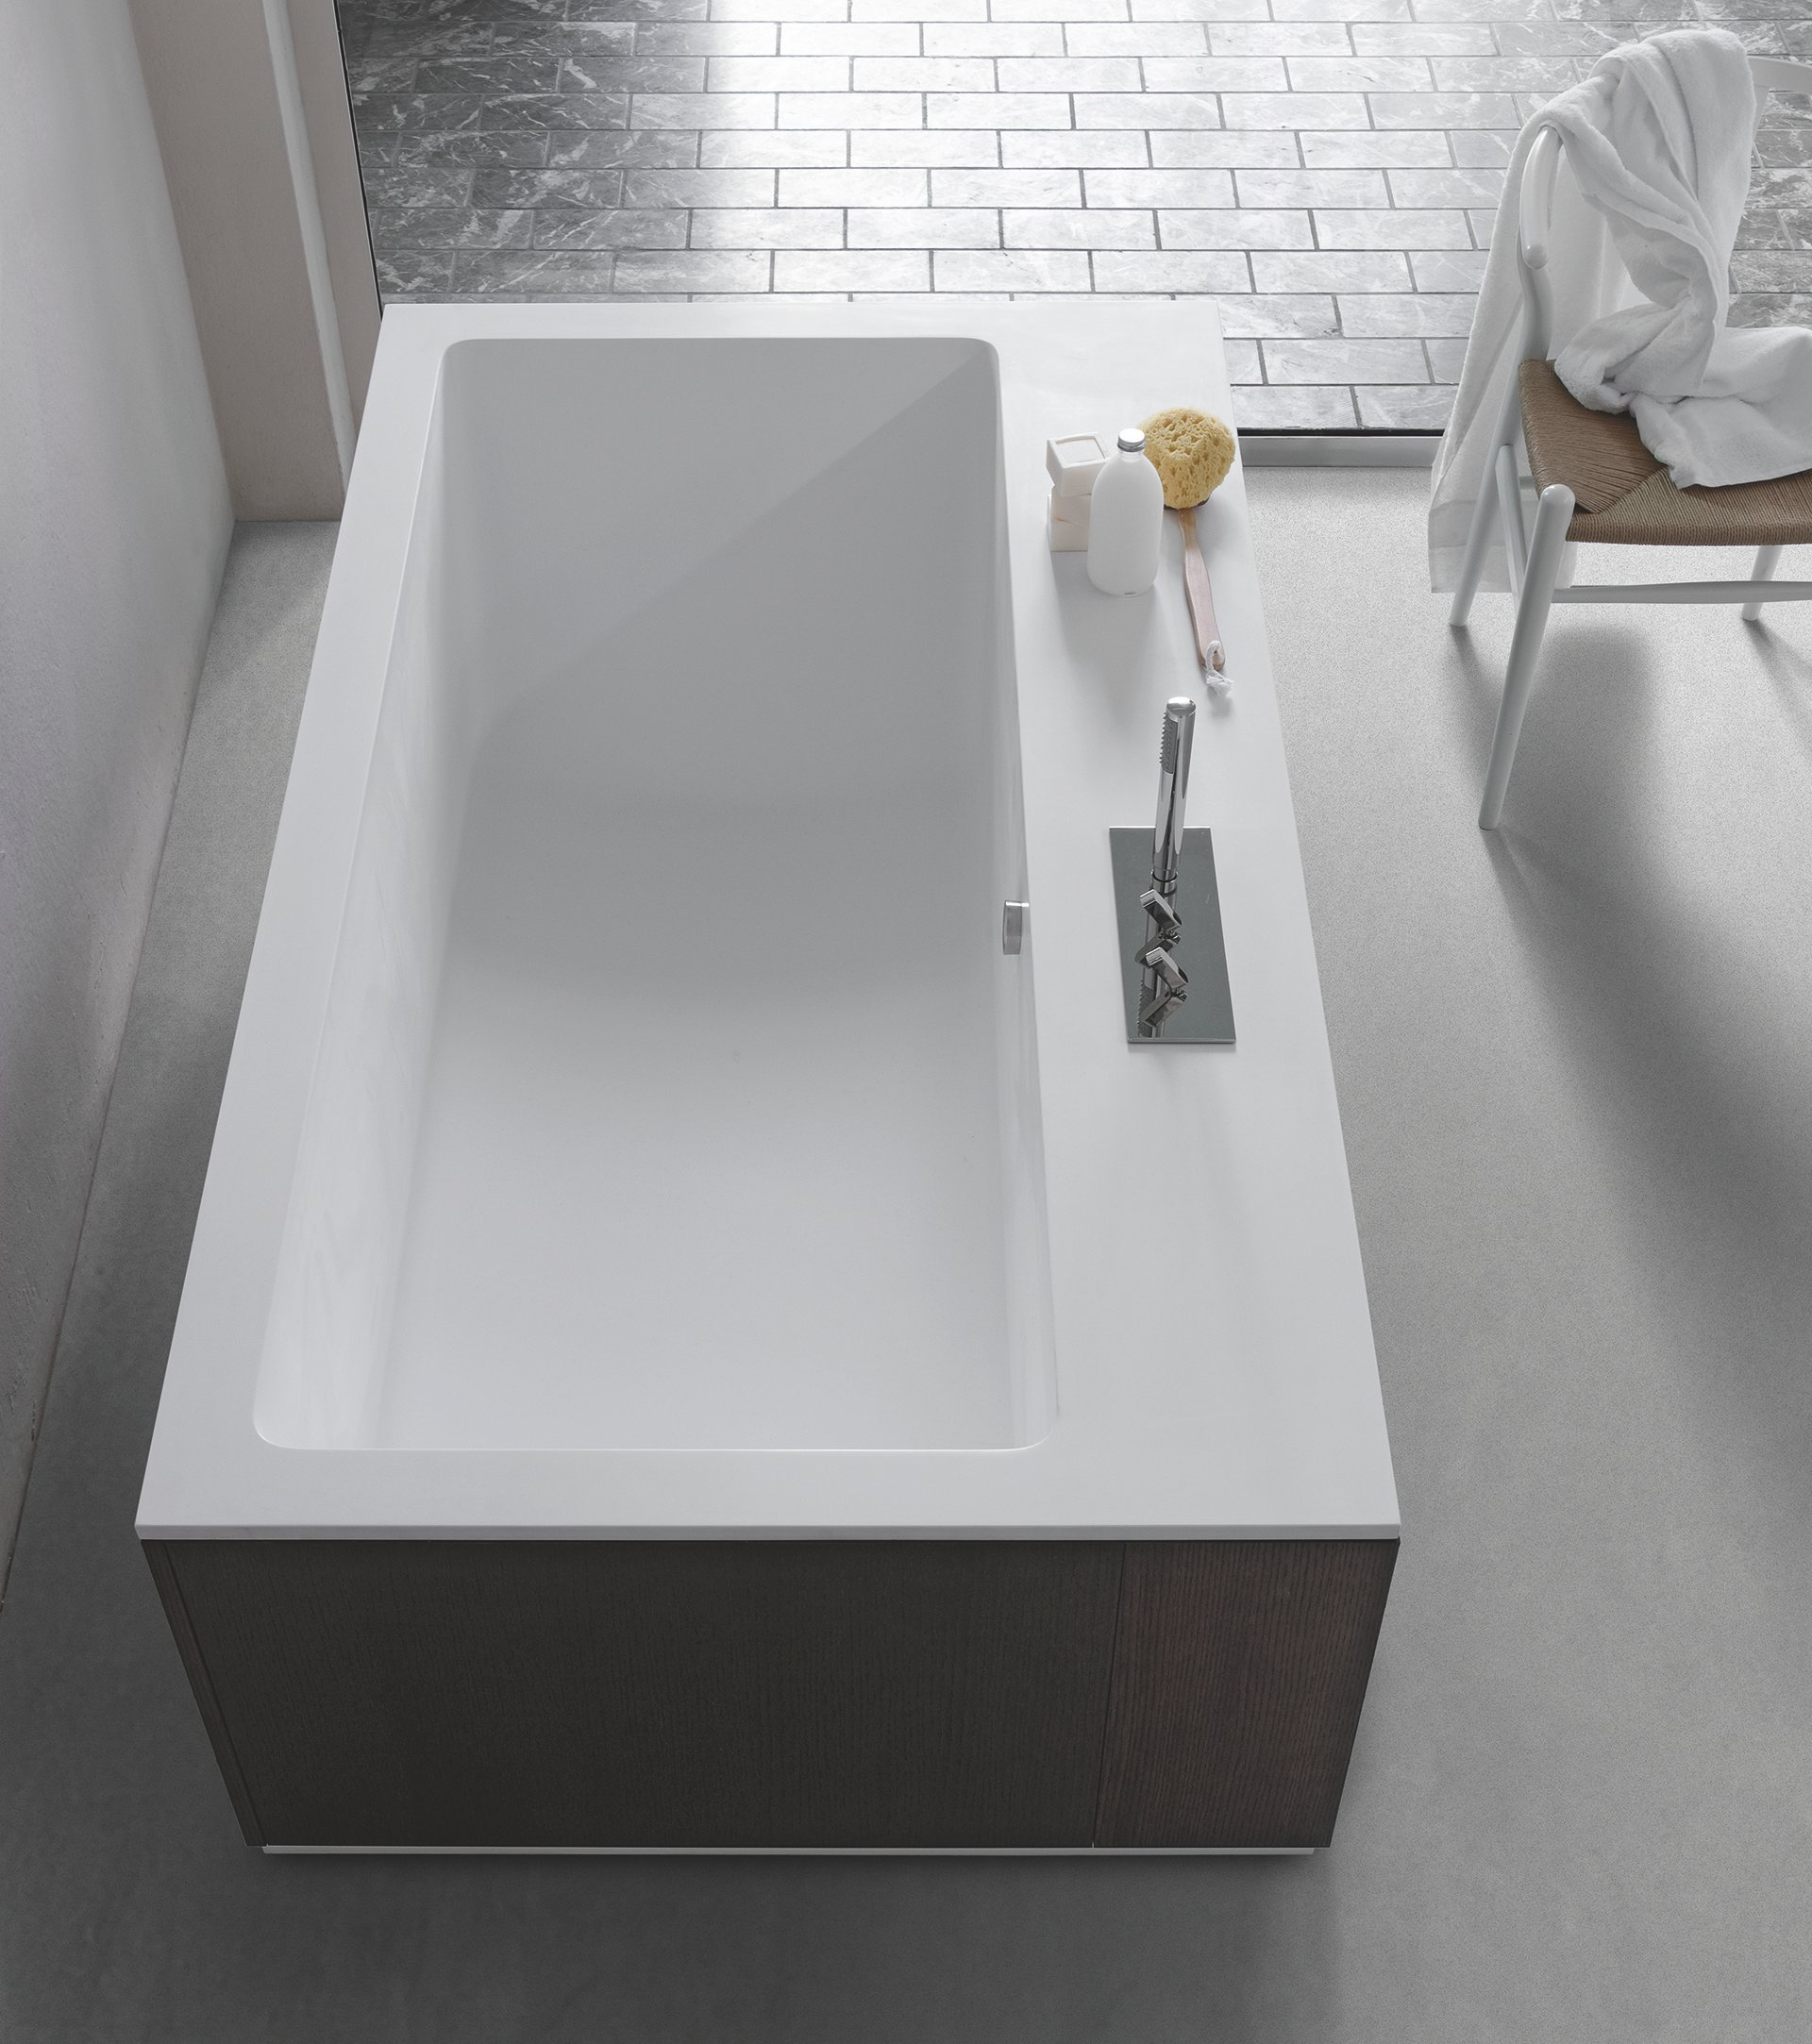 dark single bathtubs usa black bathtub bathroom huntshire set walnut wmro virtu dw gs in vanity